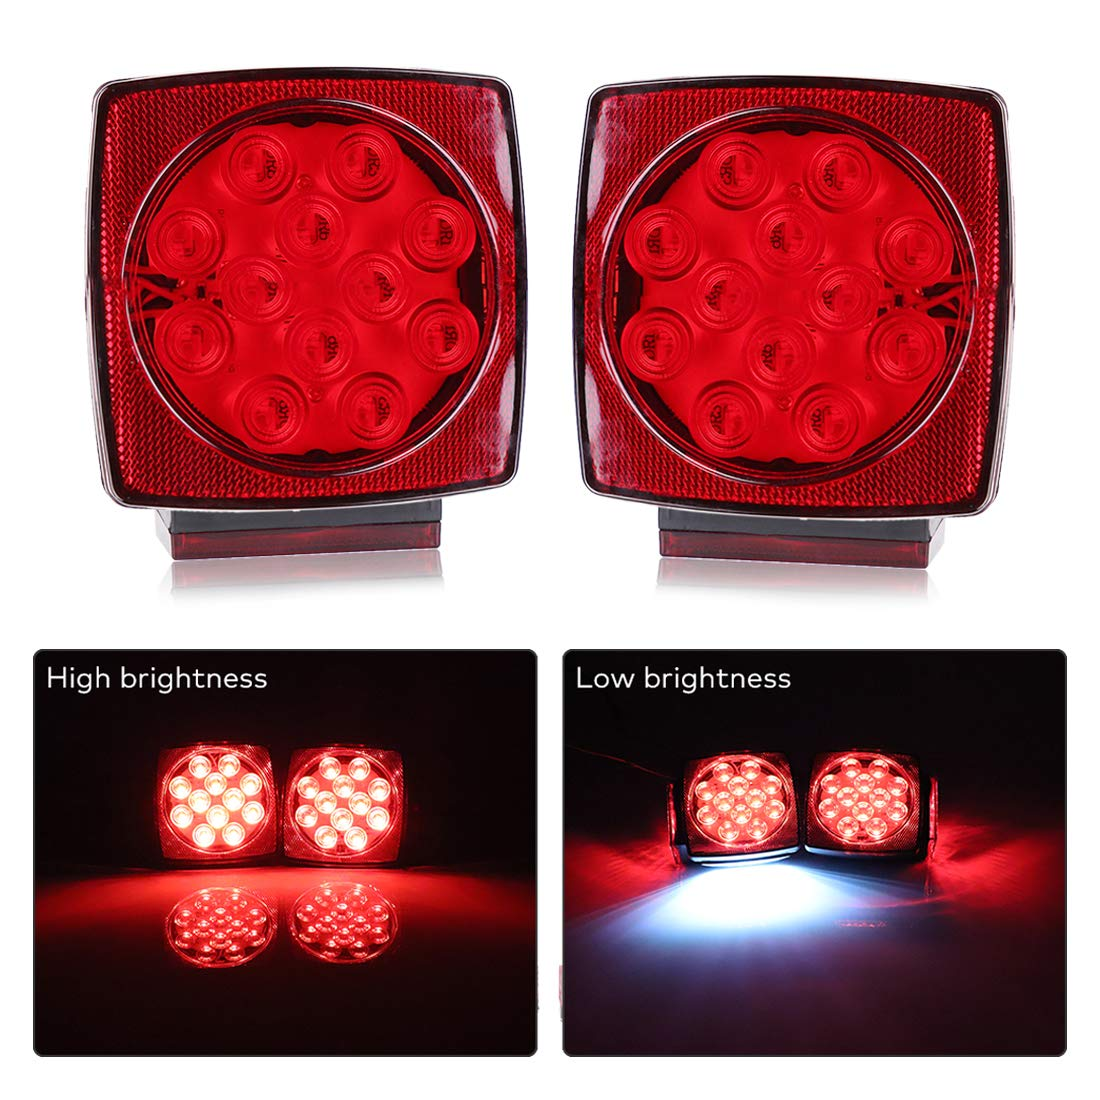 BougeRV 12V LED Trailer Light Waterproof Trailer Tail Lights Running Stop Turn Signal Brake Marker Reversing Backup Light for Under 80 Inch Boat Trailer Camper Truck RV Marine by BougeRV